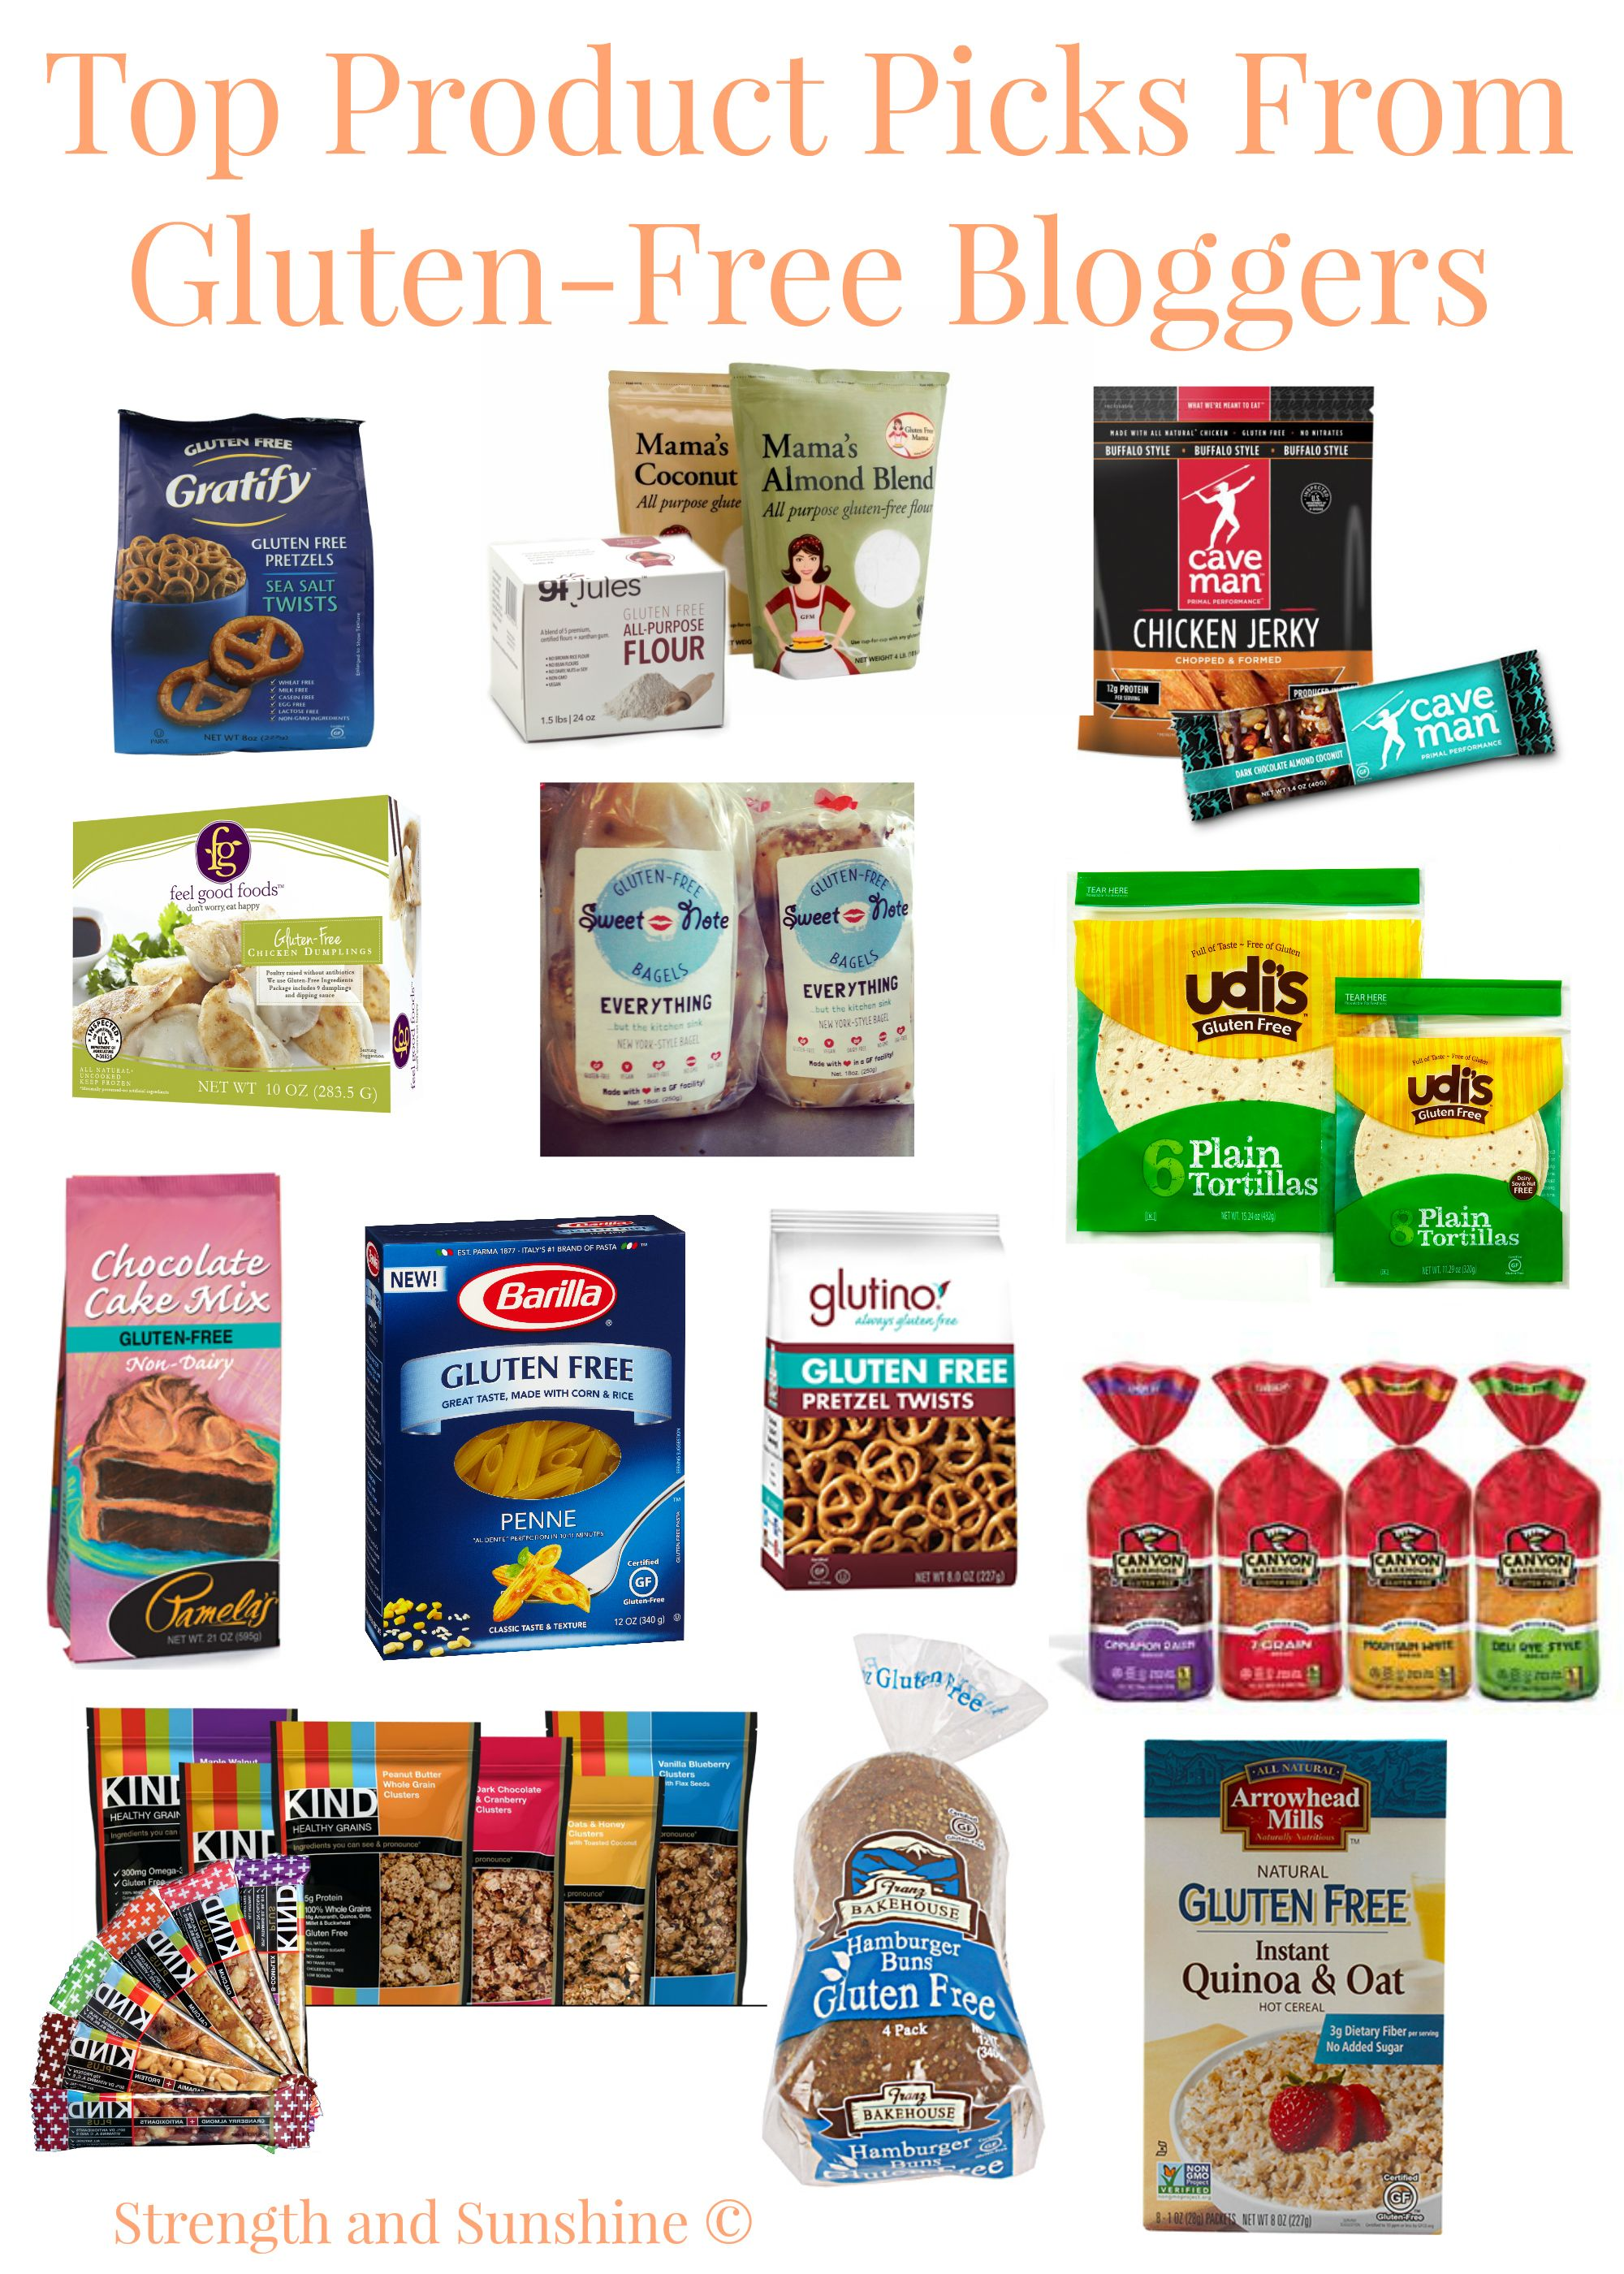 Top Product Picks From Gluten-Free Bloggers